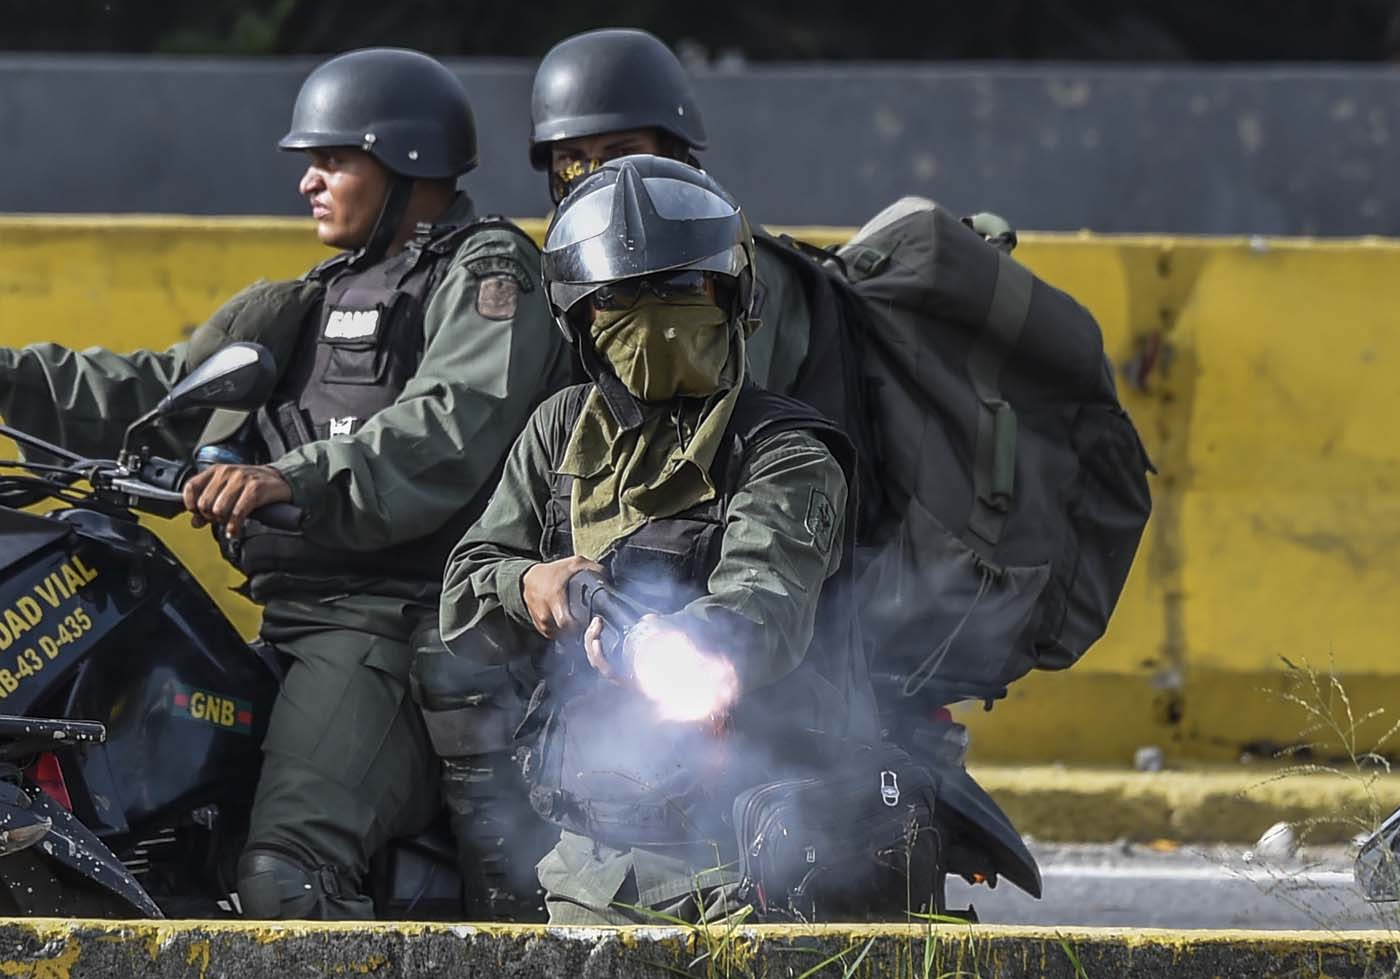 Members of the National Guard charge on opposition activists during protests against Venezuelan President Nicolas Maduro in Caracas on July 10, 2017. Venezuela hit its 100th day of anti-government protests Sunday, amid uncertainty over whether the release from prison a day earlier of prominent political prisoner Leopoldo Lopez might open the way to negotiations to defuse the profound crisis gripping the country. / AFP PHOTO / JUAN BARRETO